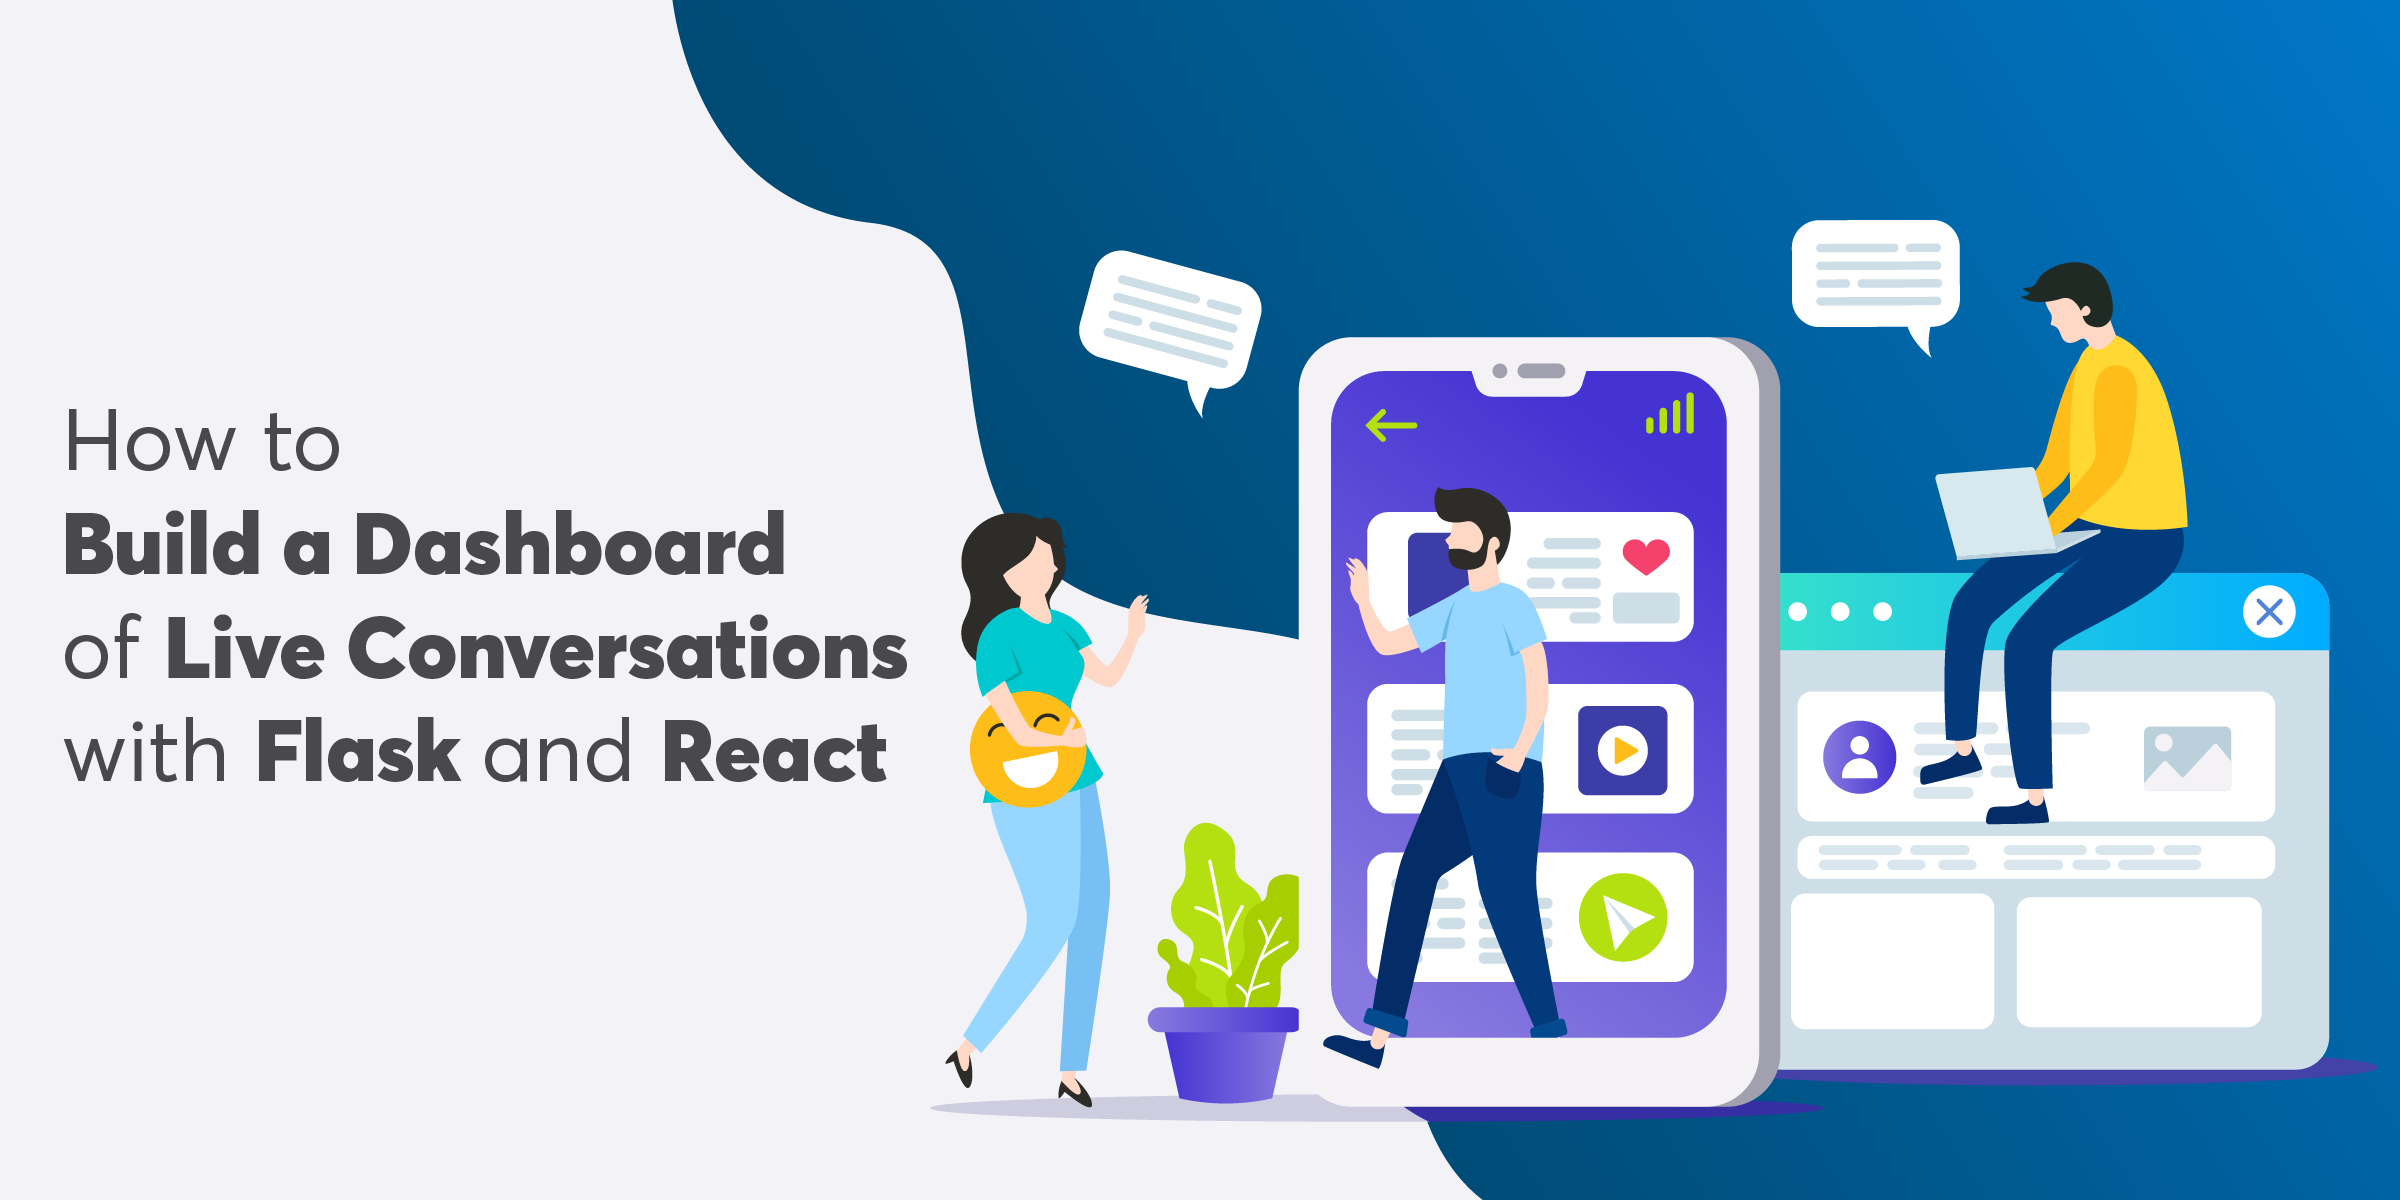 How to Build a Dashboard of Live Conversations with Flask and React